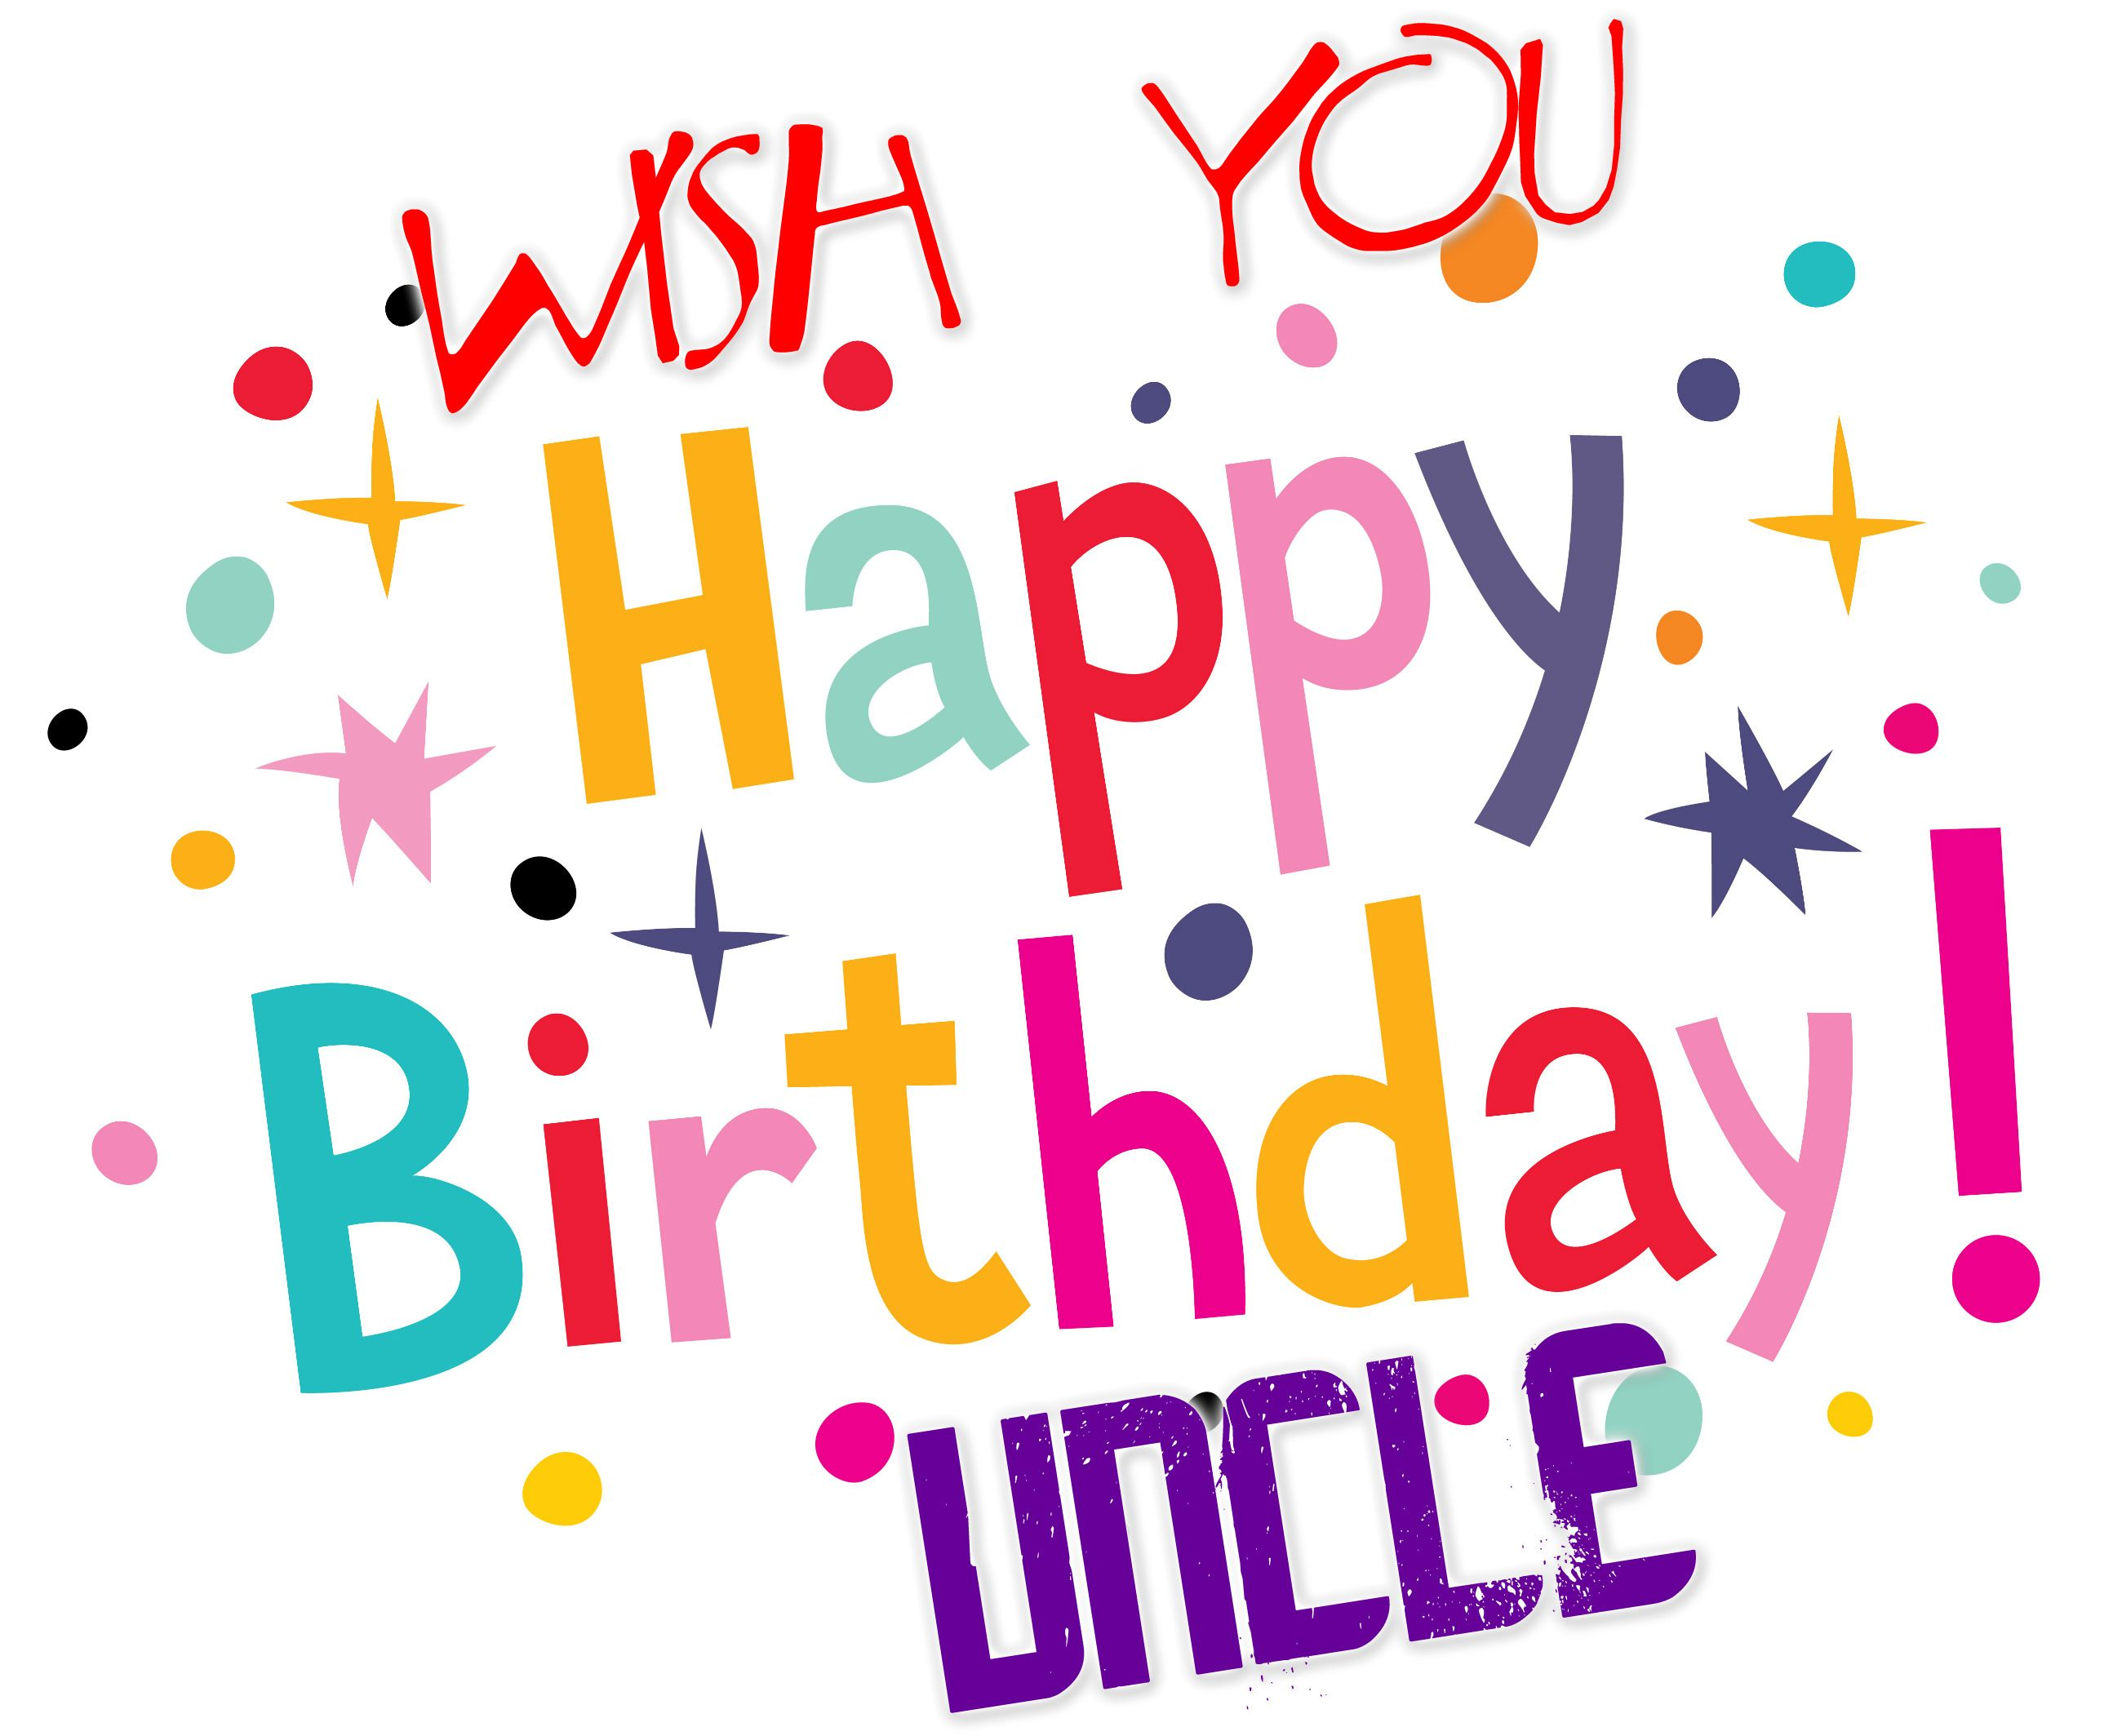 Birthday wishes for uncle happy birthday wishes and messages birthday wishes for uncle happy birthday wishes and messages m4hsunfo